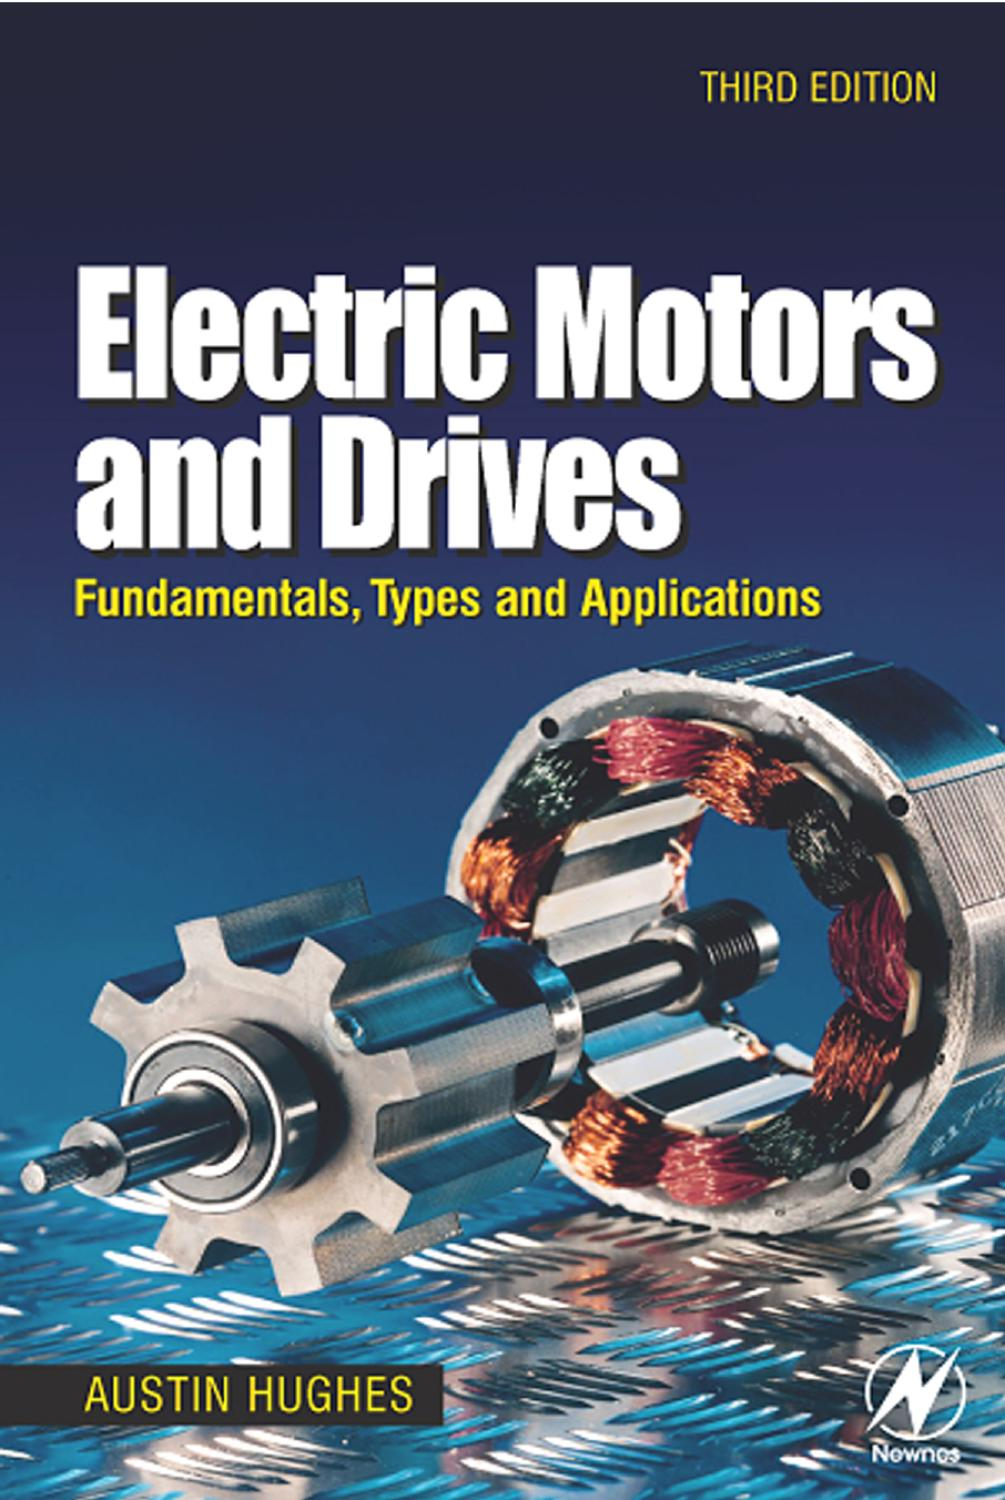 electric motors and drives by unknownnoone issuu